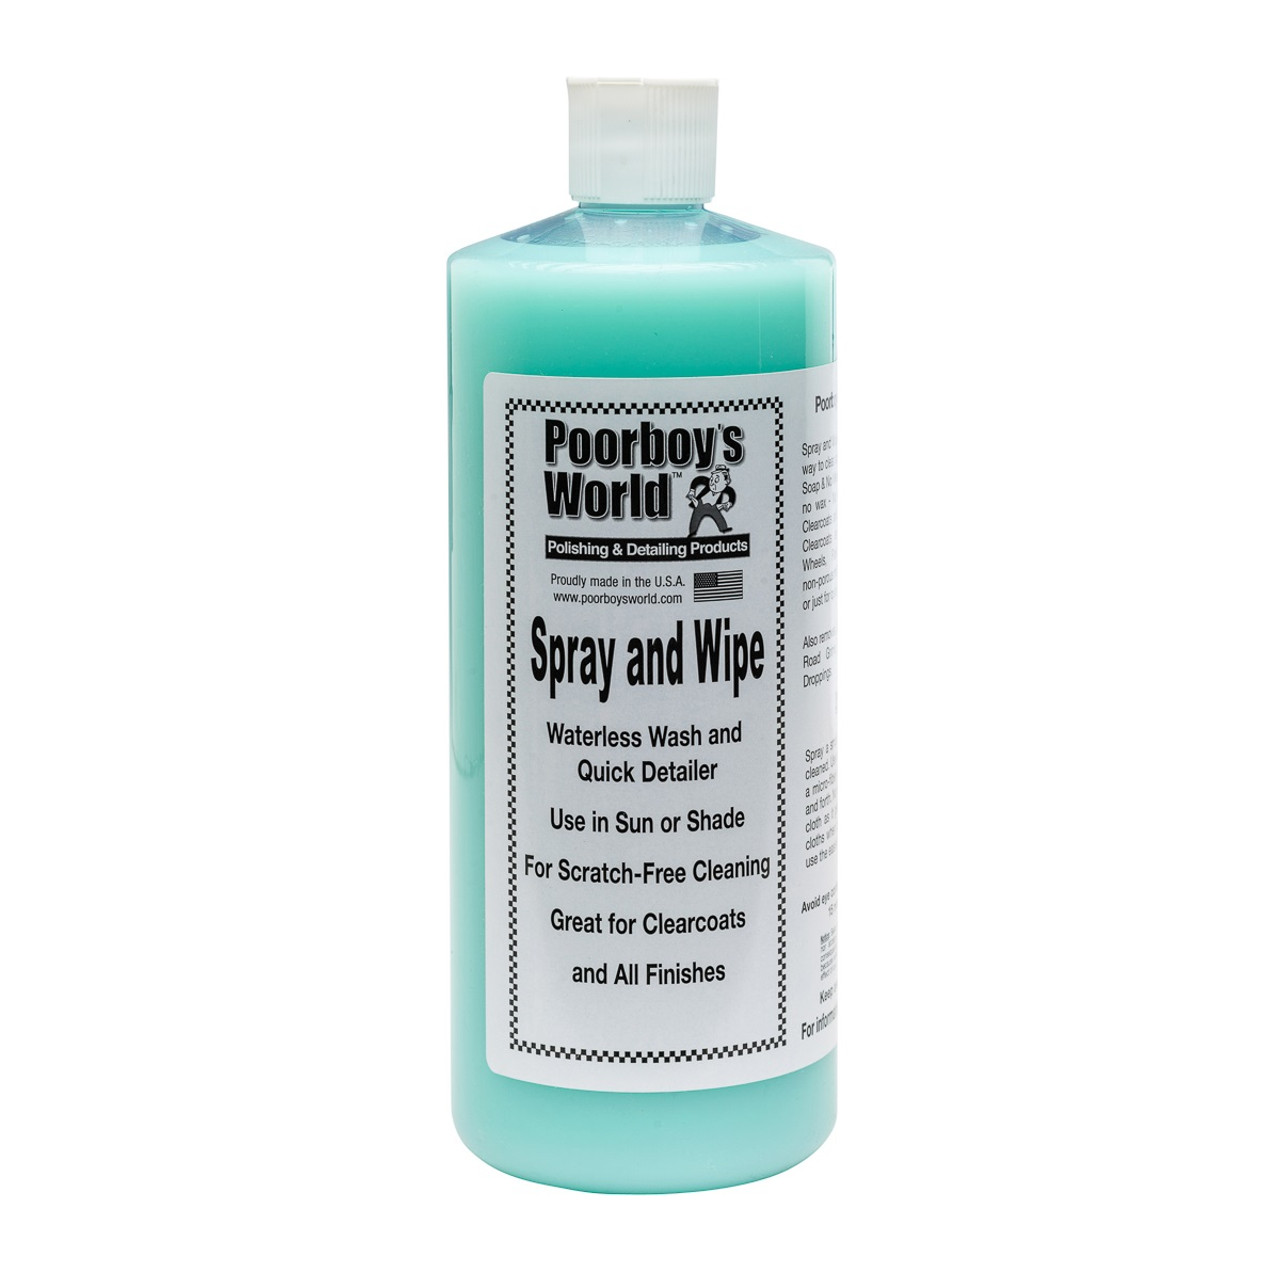 Poorboy's World Spray and Wipe 32oz Refill